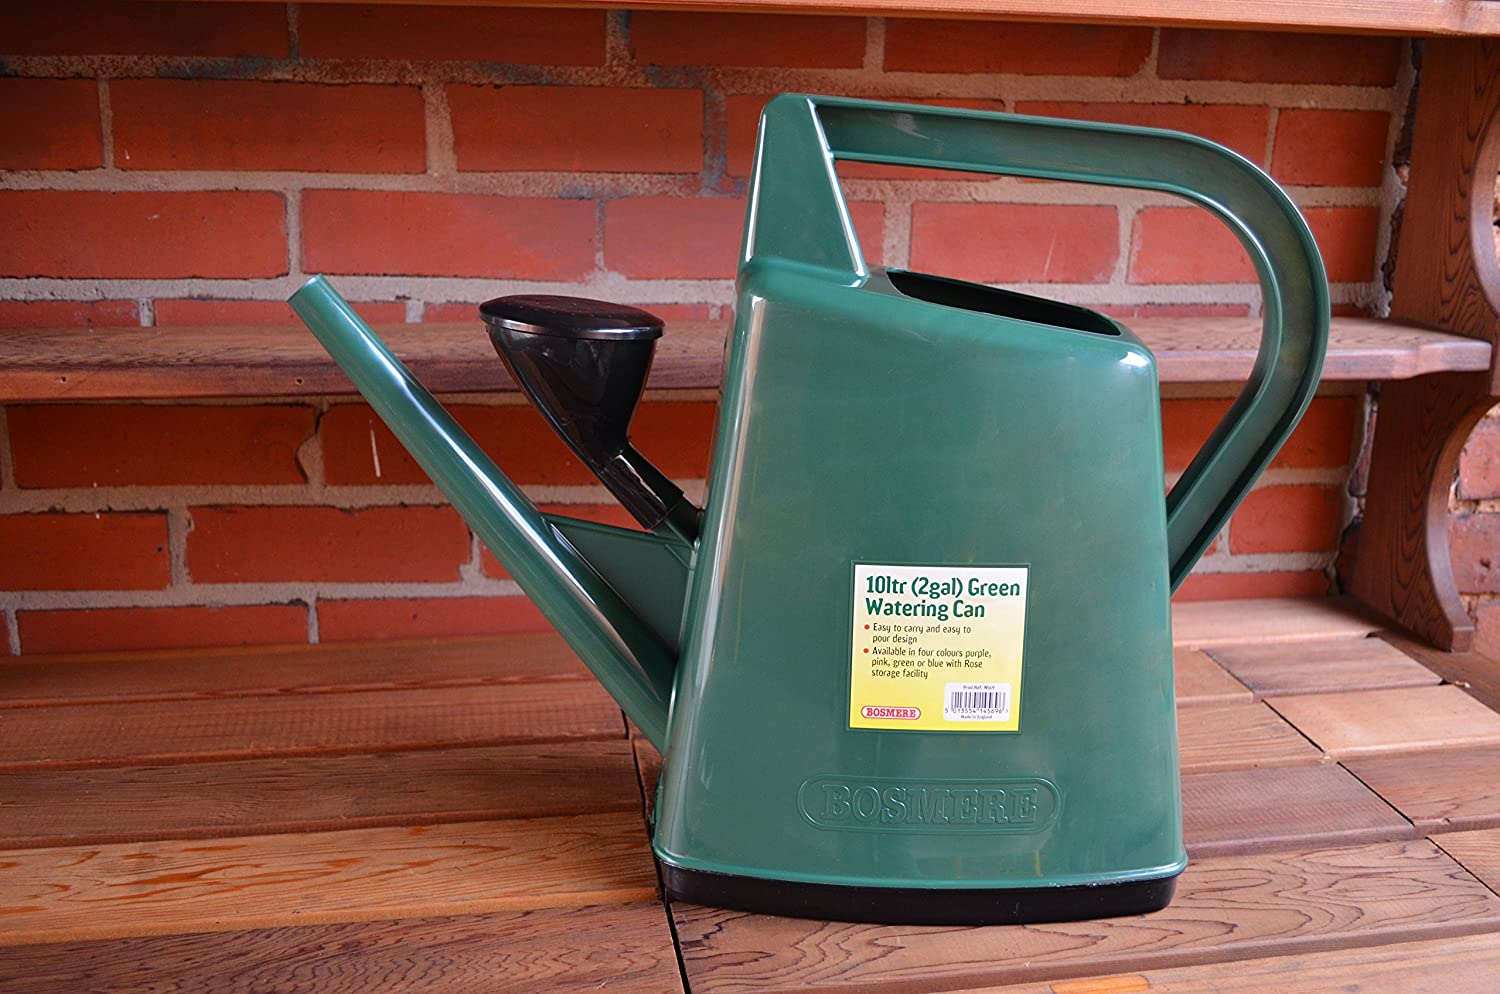 Bosmere Plastic Outdoor Watering Can, 2.6-Gallon, Green N569